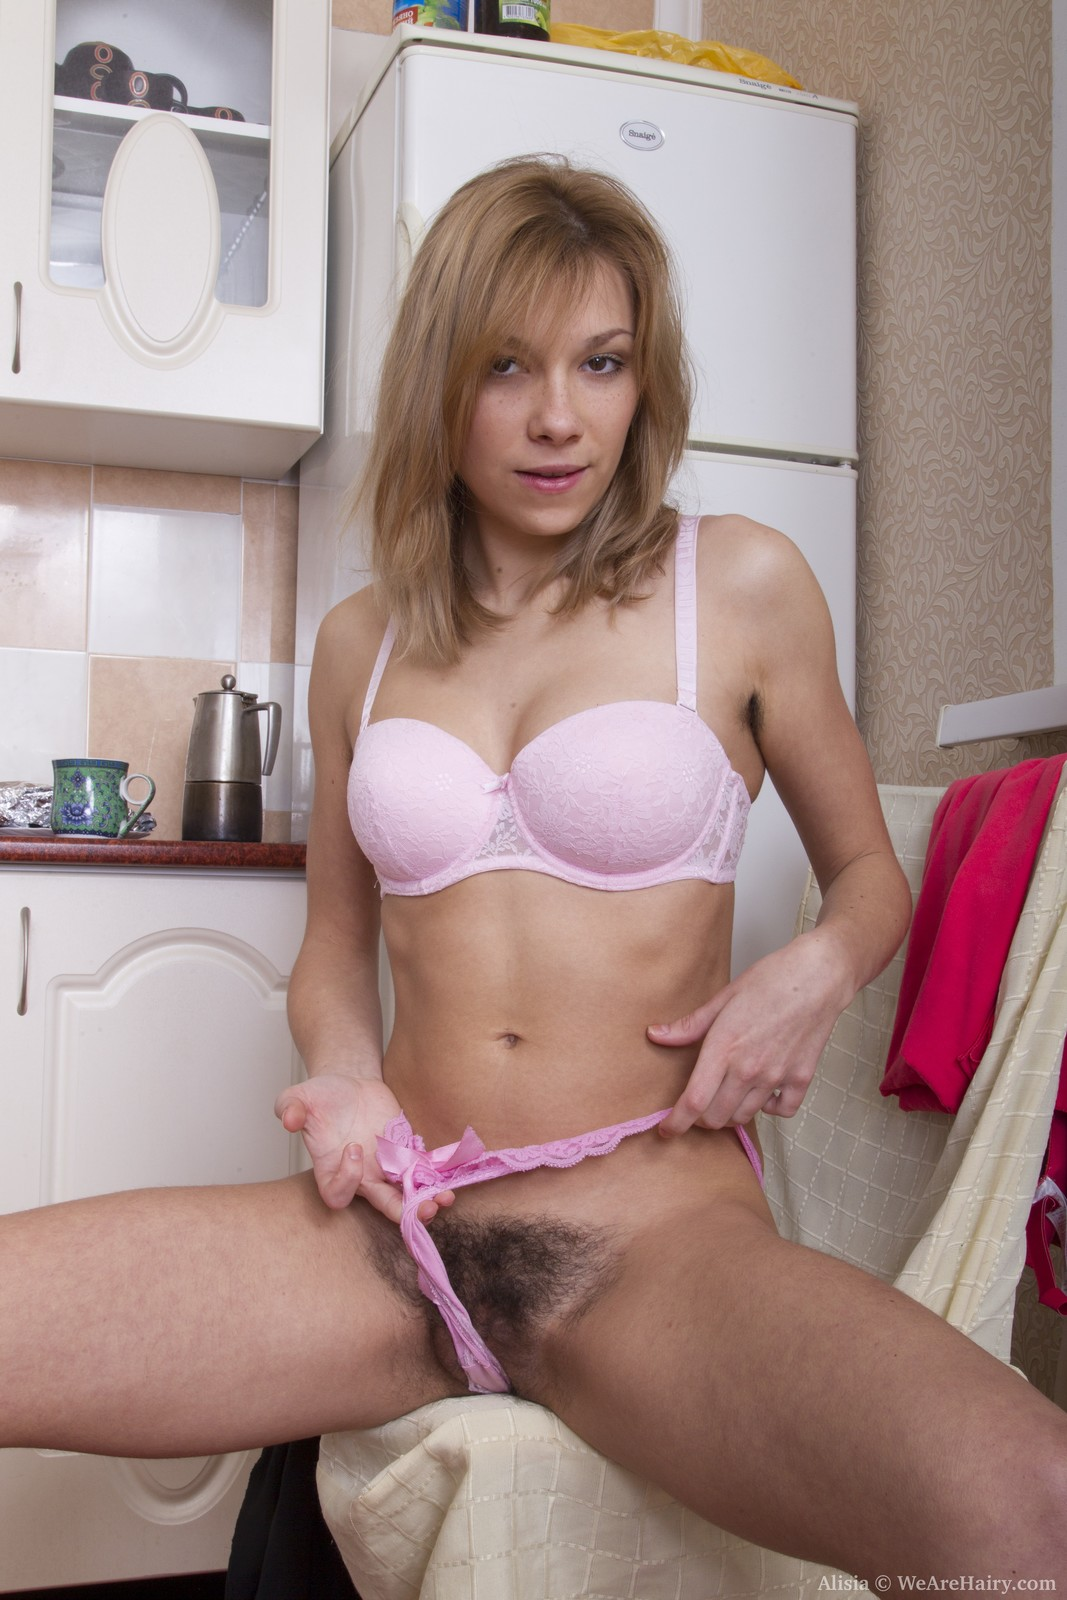 alisia spreads pussy lips after stripping naked - hairyzilla